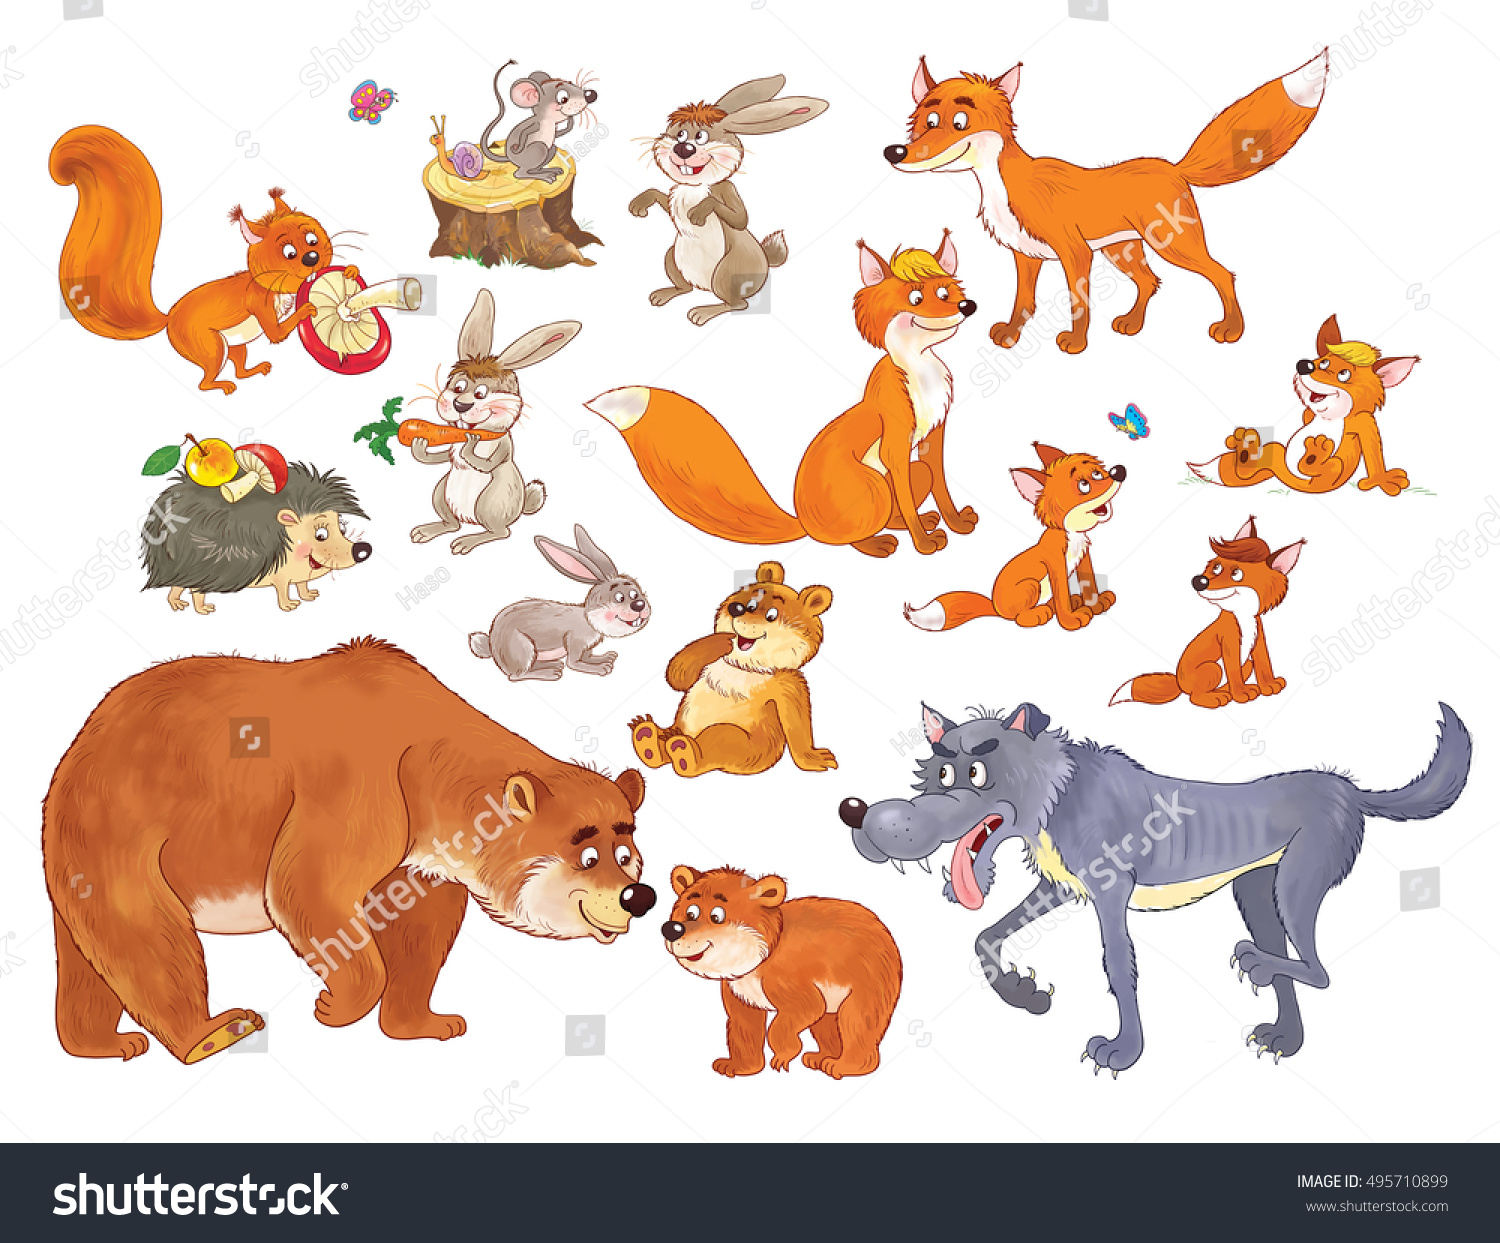 zoo set cute funny woodland animals stock illustration 495710899